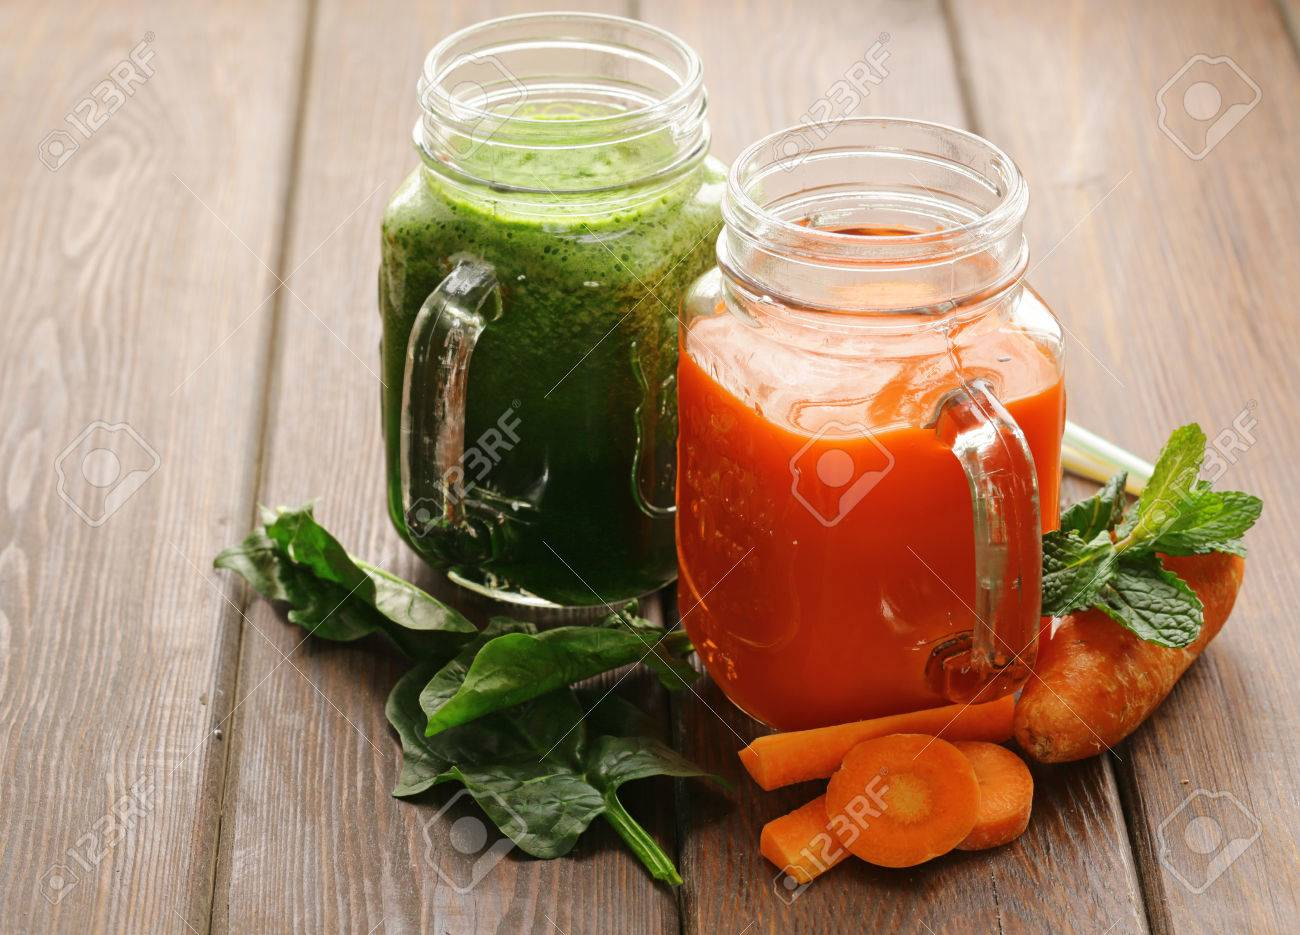 Image result for Spinach and Carrot Juice